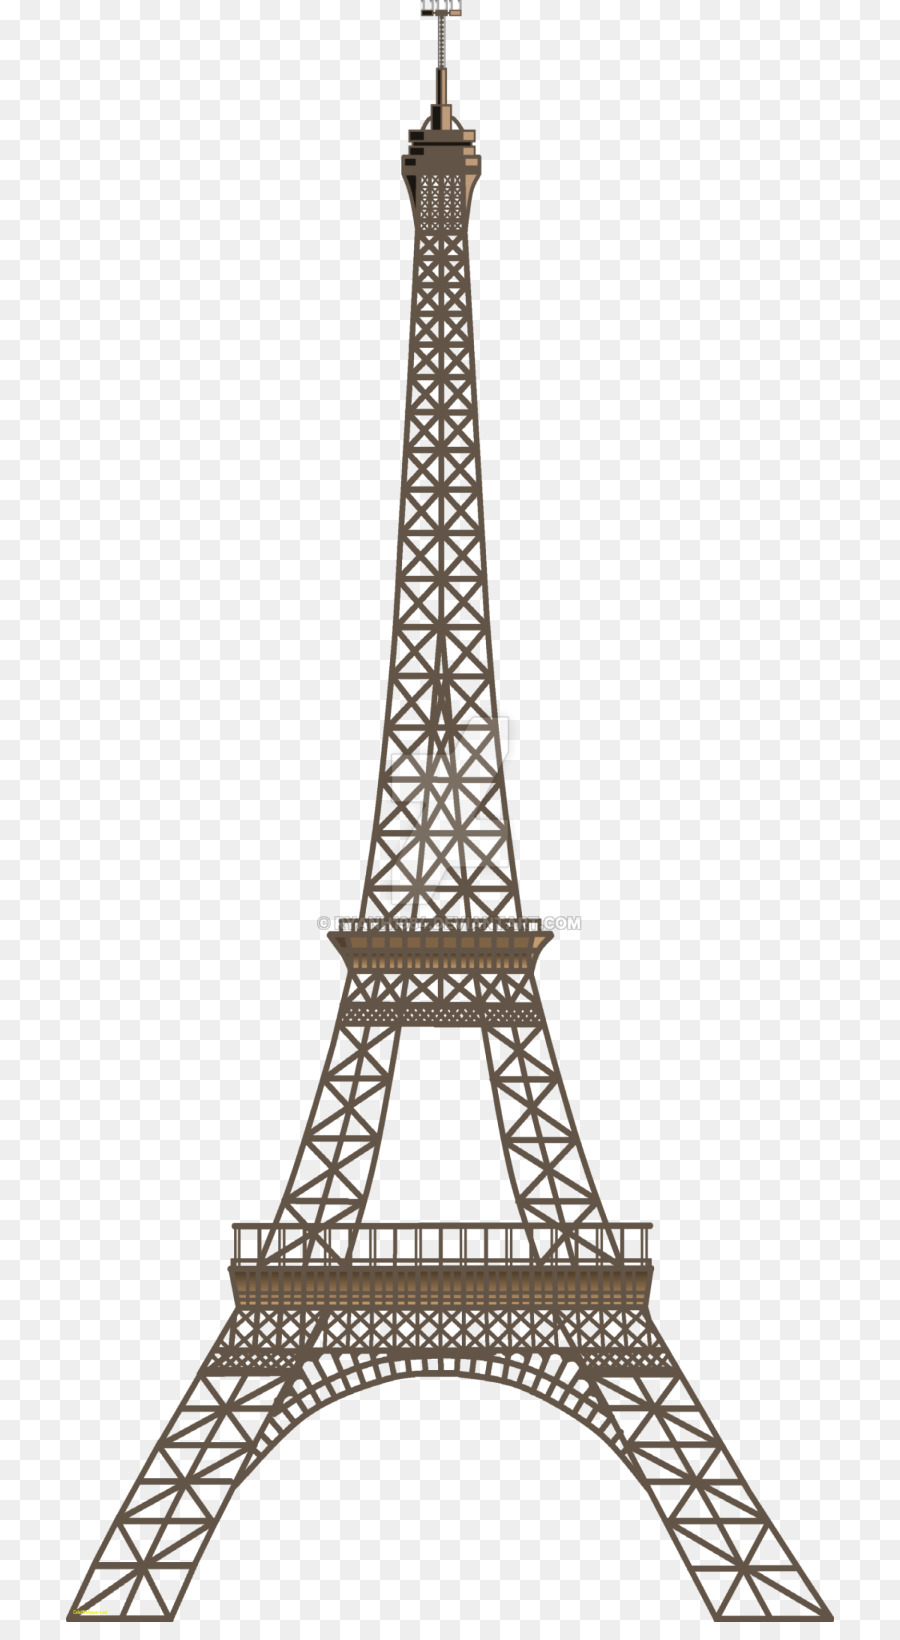 Paris eiffel tower clipart 7 » Clipart Station.